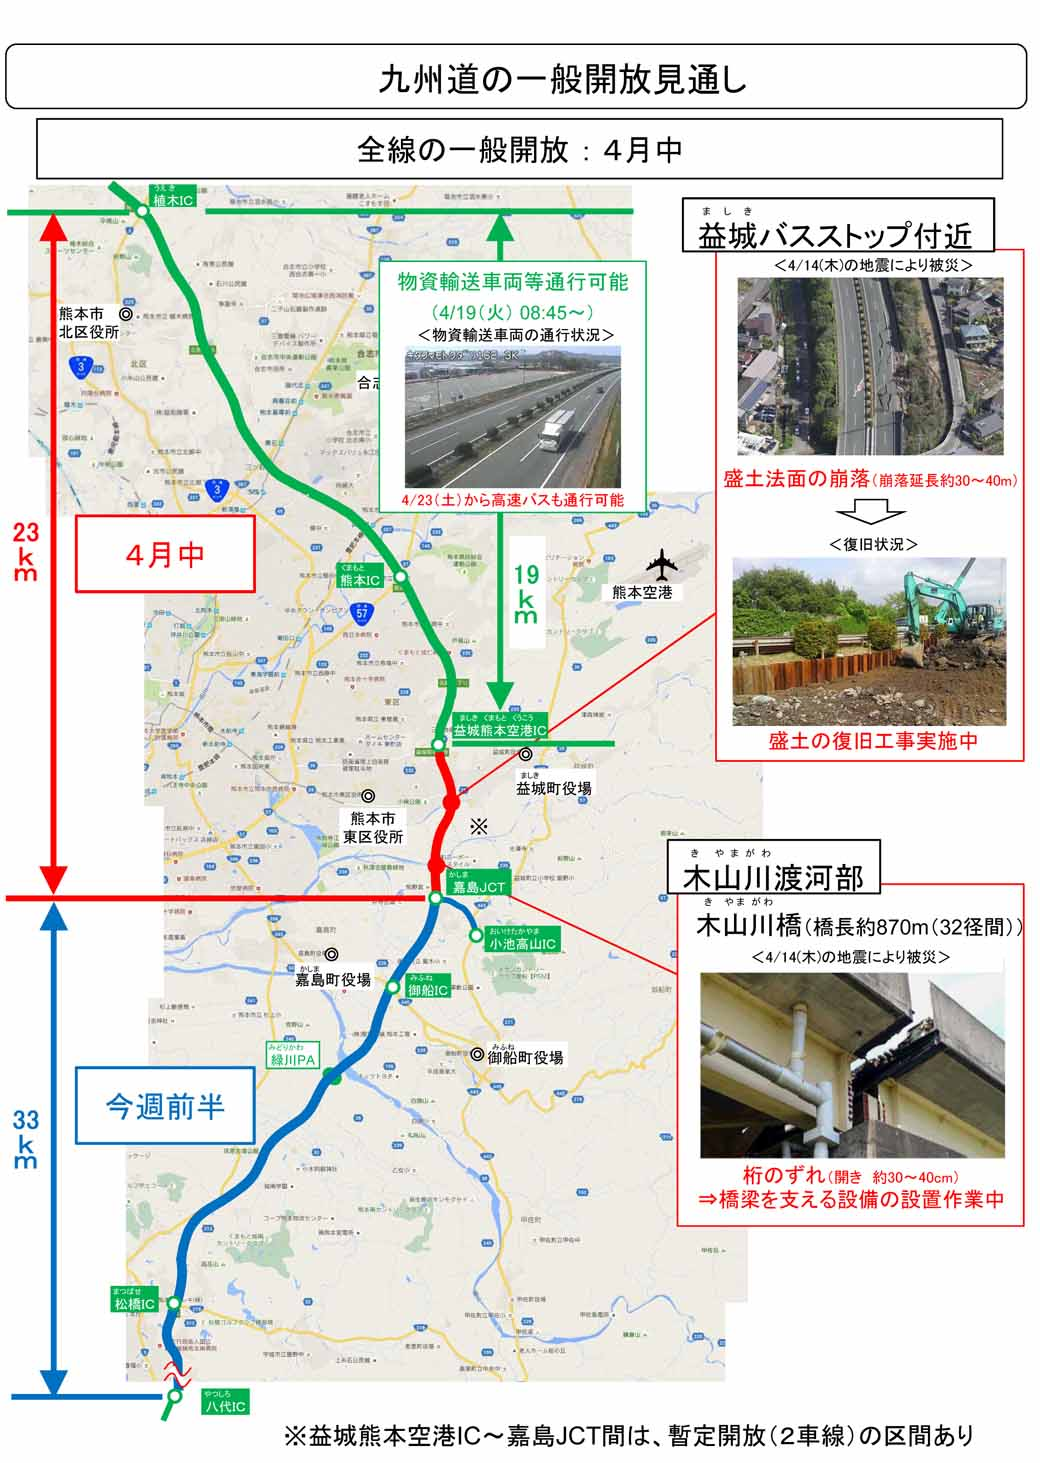 ministry-of-land-infrastructure-and-transport-the-general-open-the-kyushu-road-whole-line-by-the-end-of-the-month-north-south-highway-of-the-aorta-recovery20160425-1